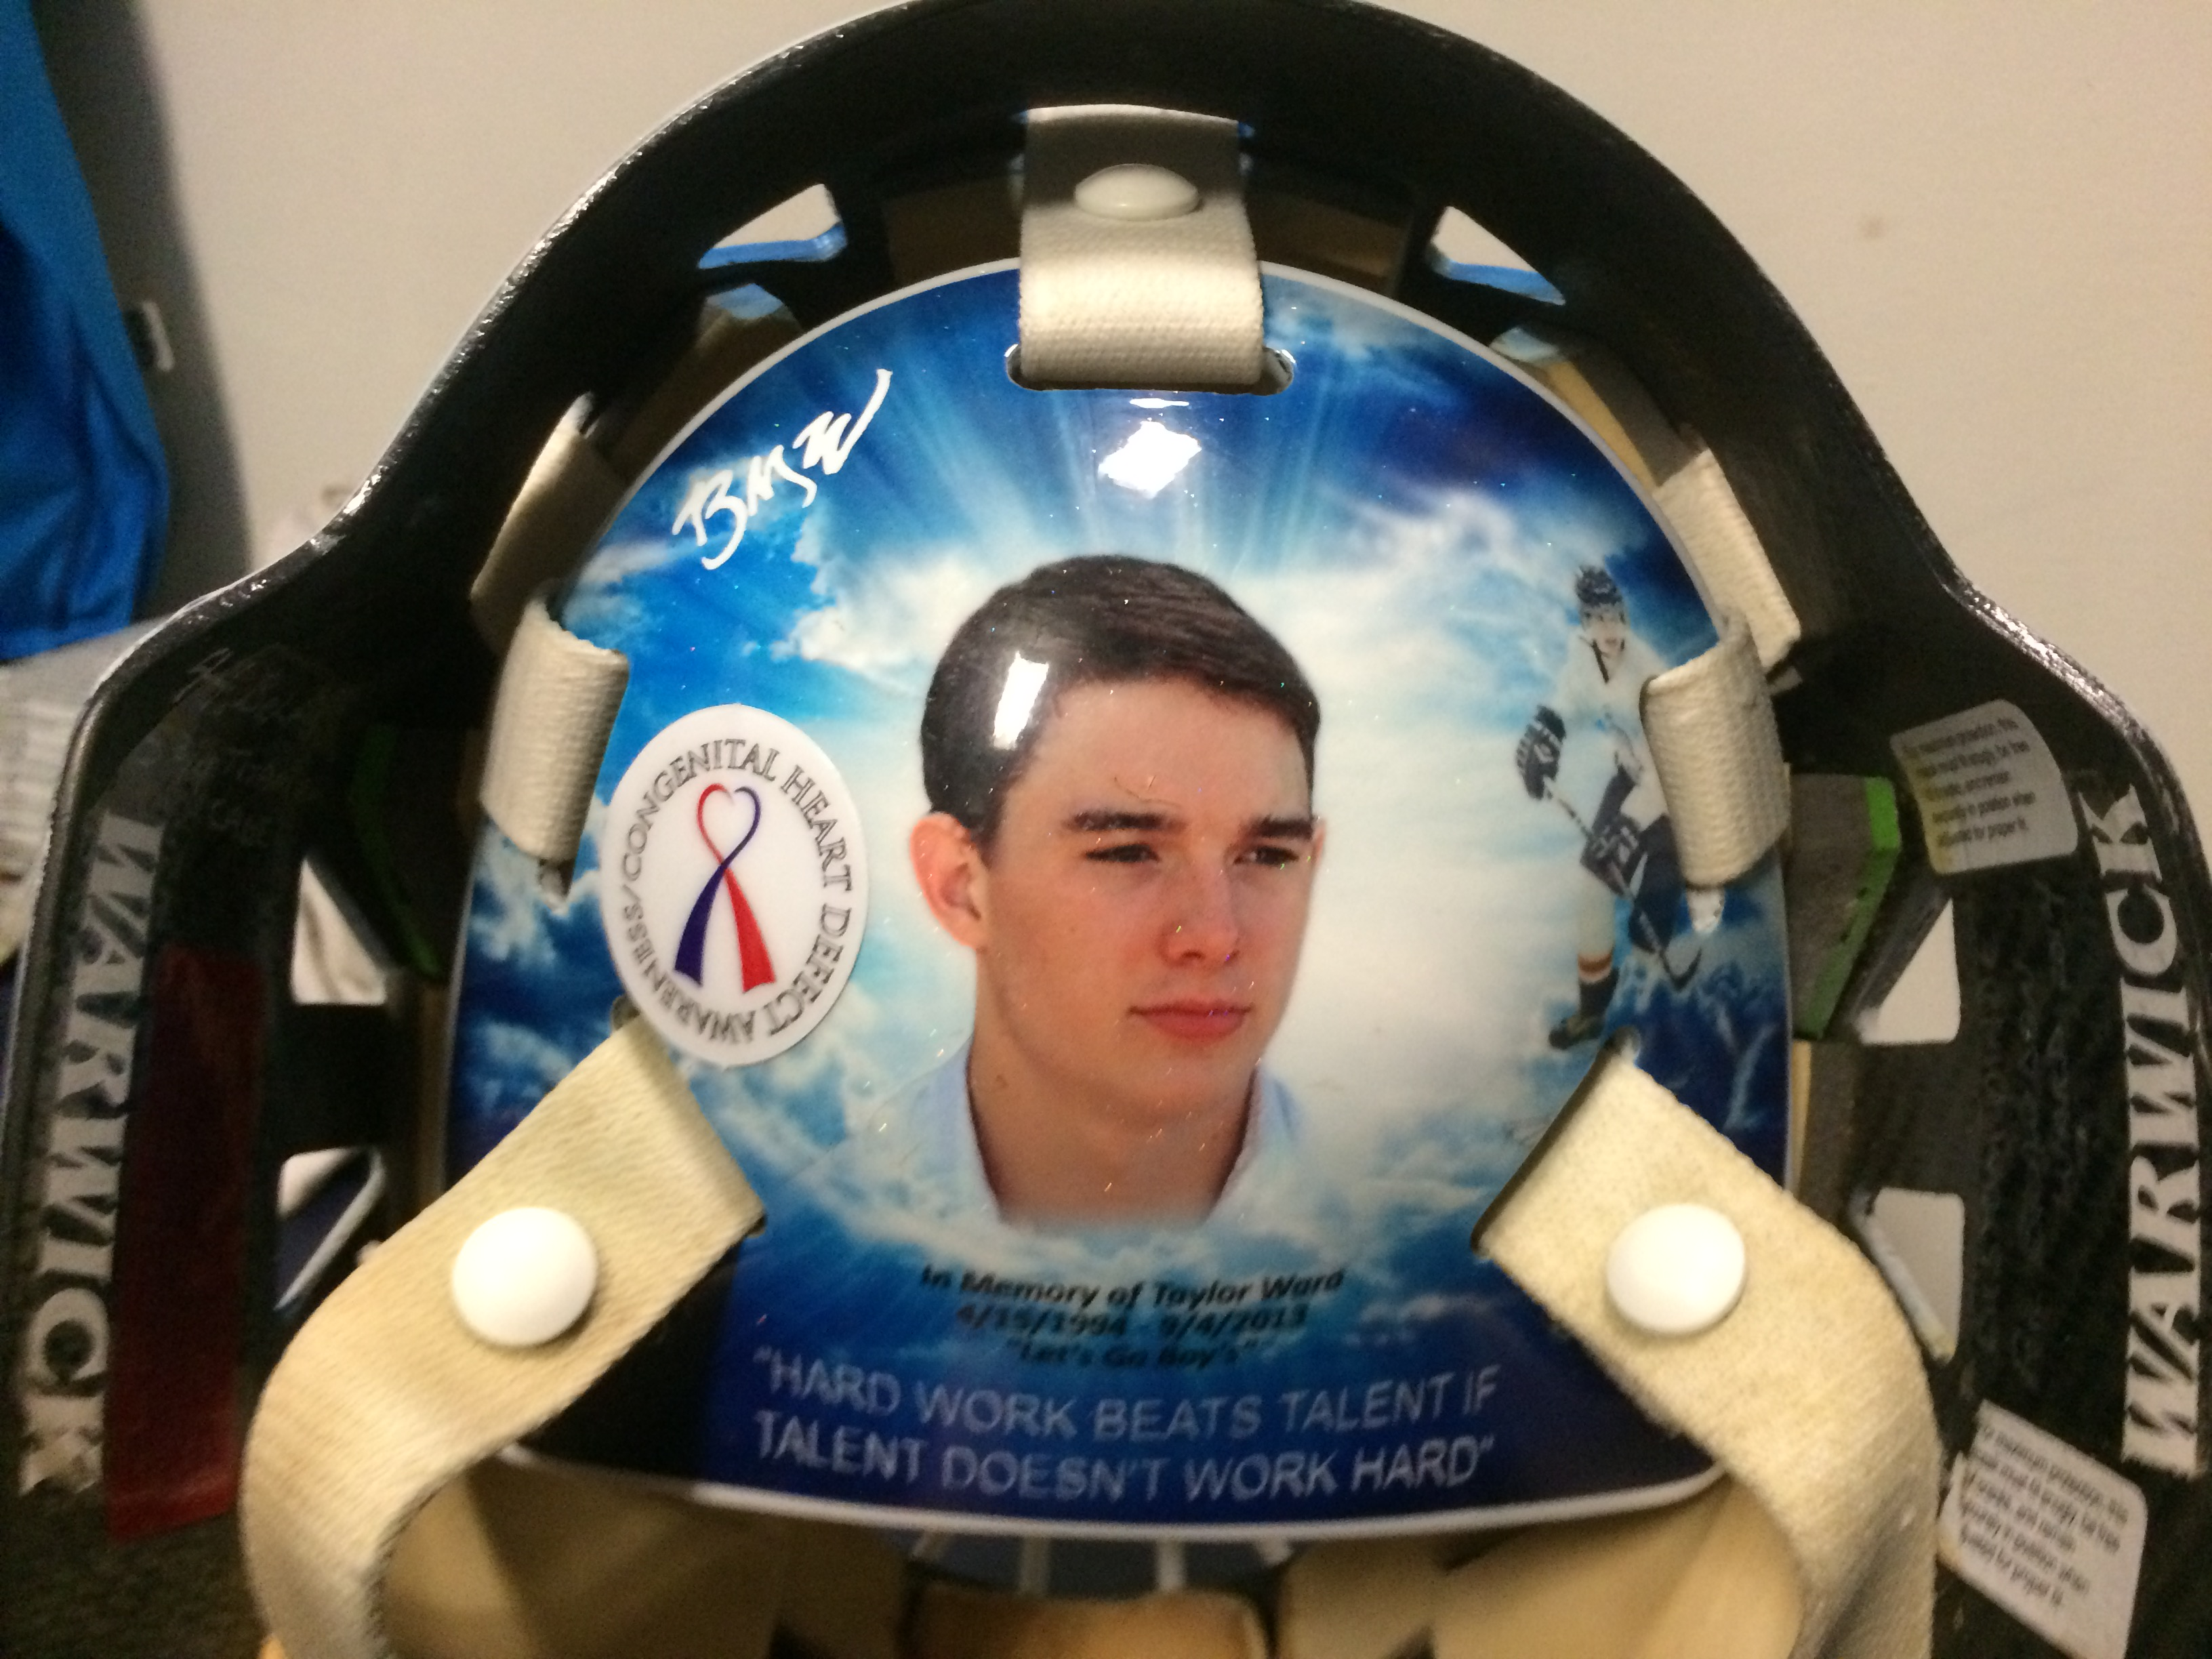 BYU goalie Brandon Ward's helmet commemorates his late brother, Taylor, who was killed in a car accident. (Brandon Ward)